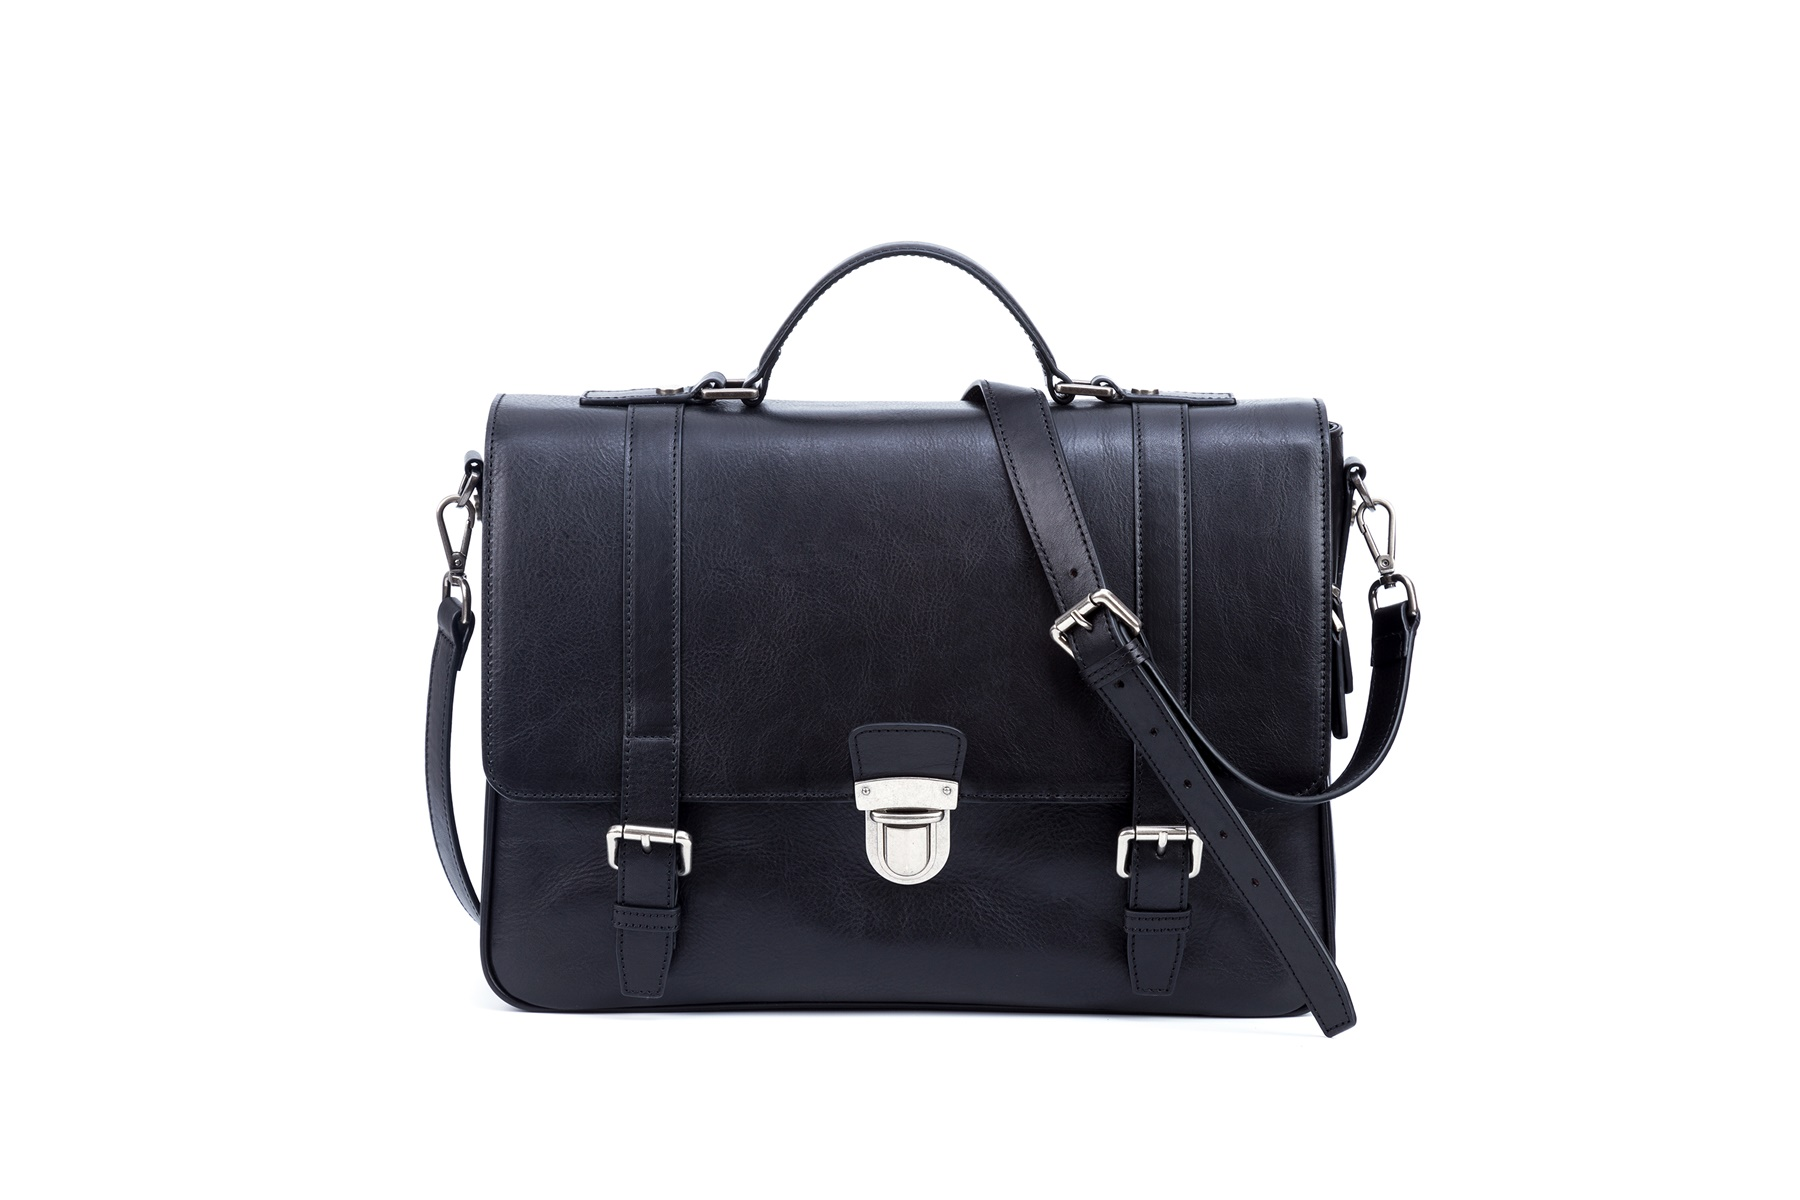 GF bags-Find Business Bag Mens Fashion Messenger Bag From GF Bags-8